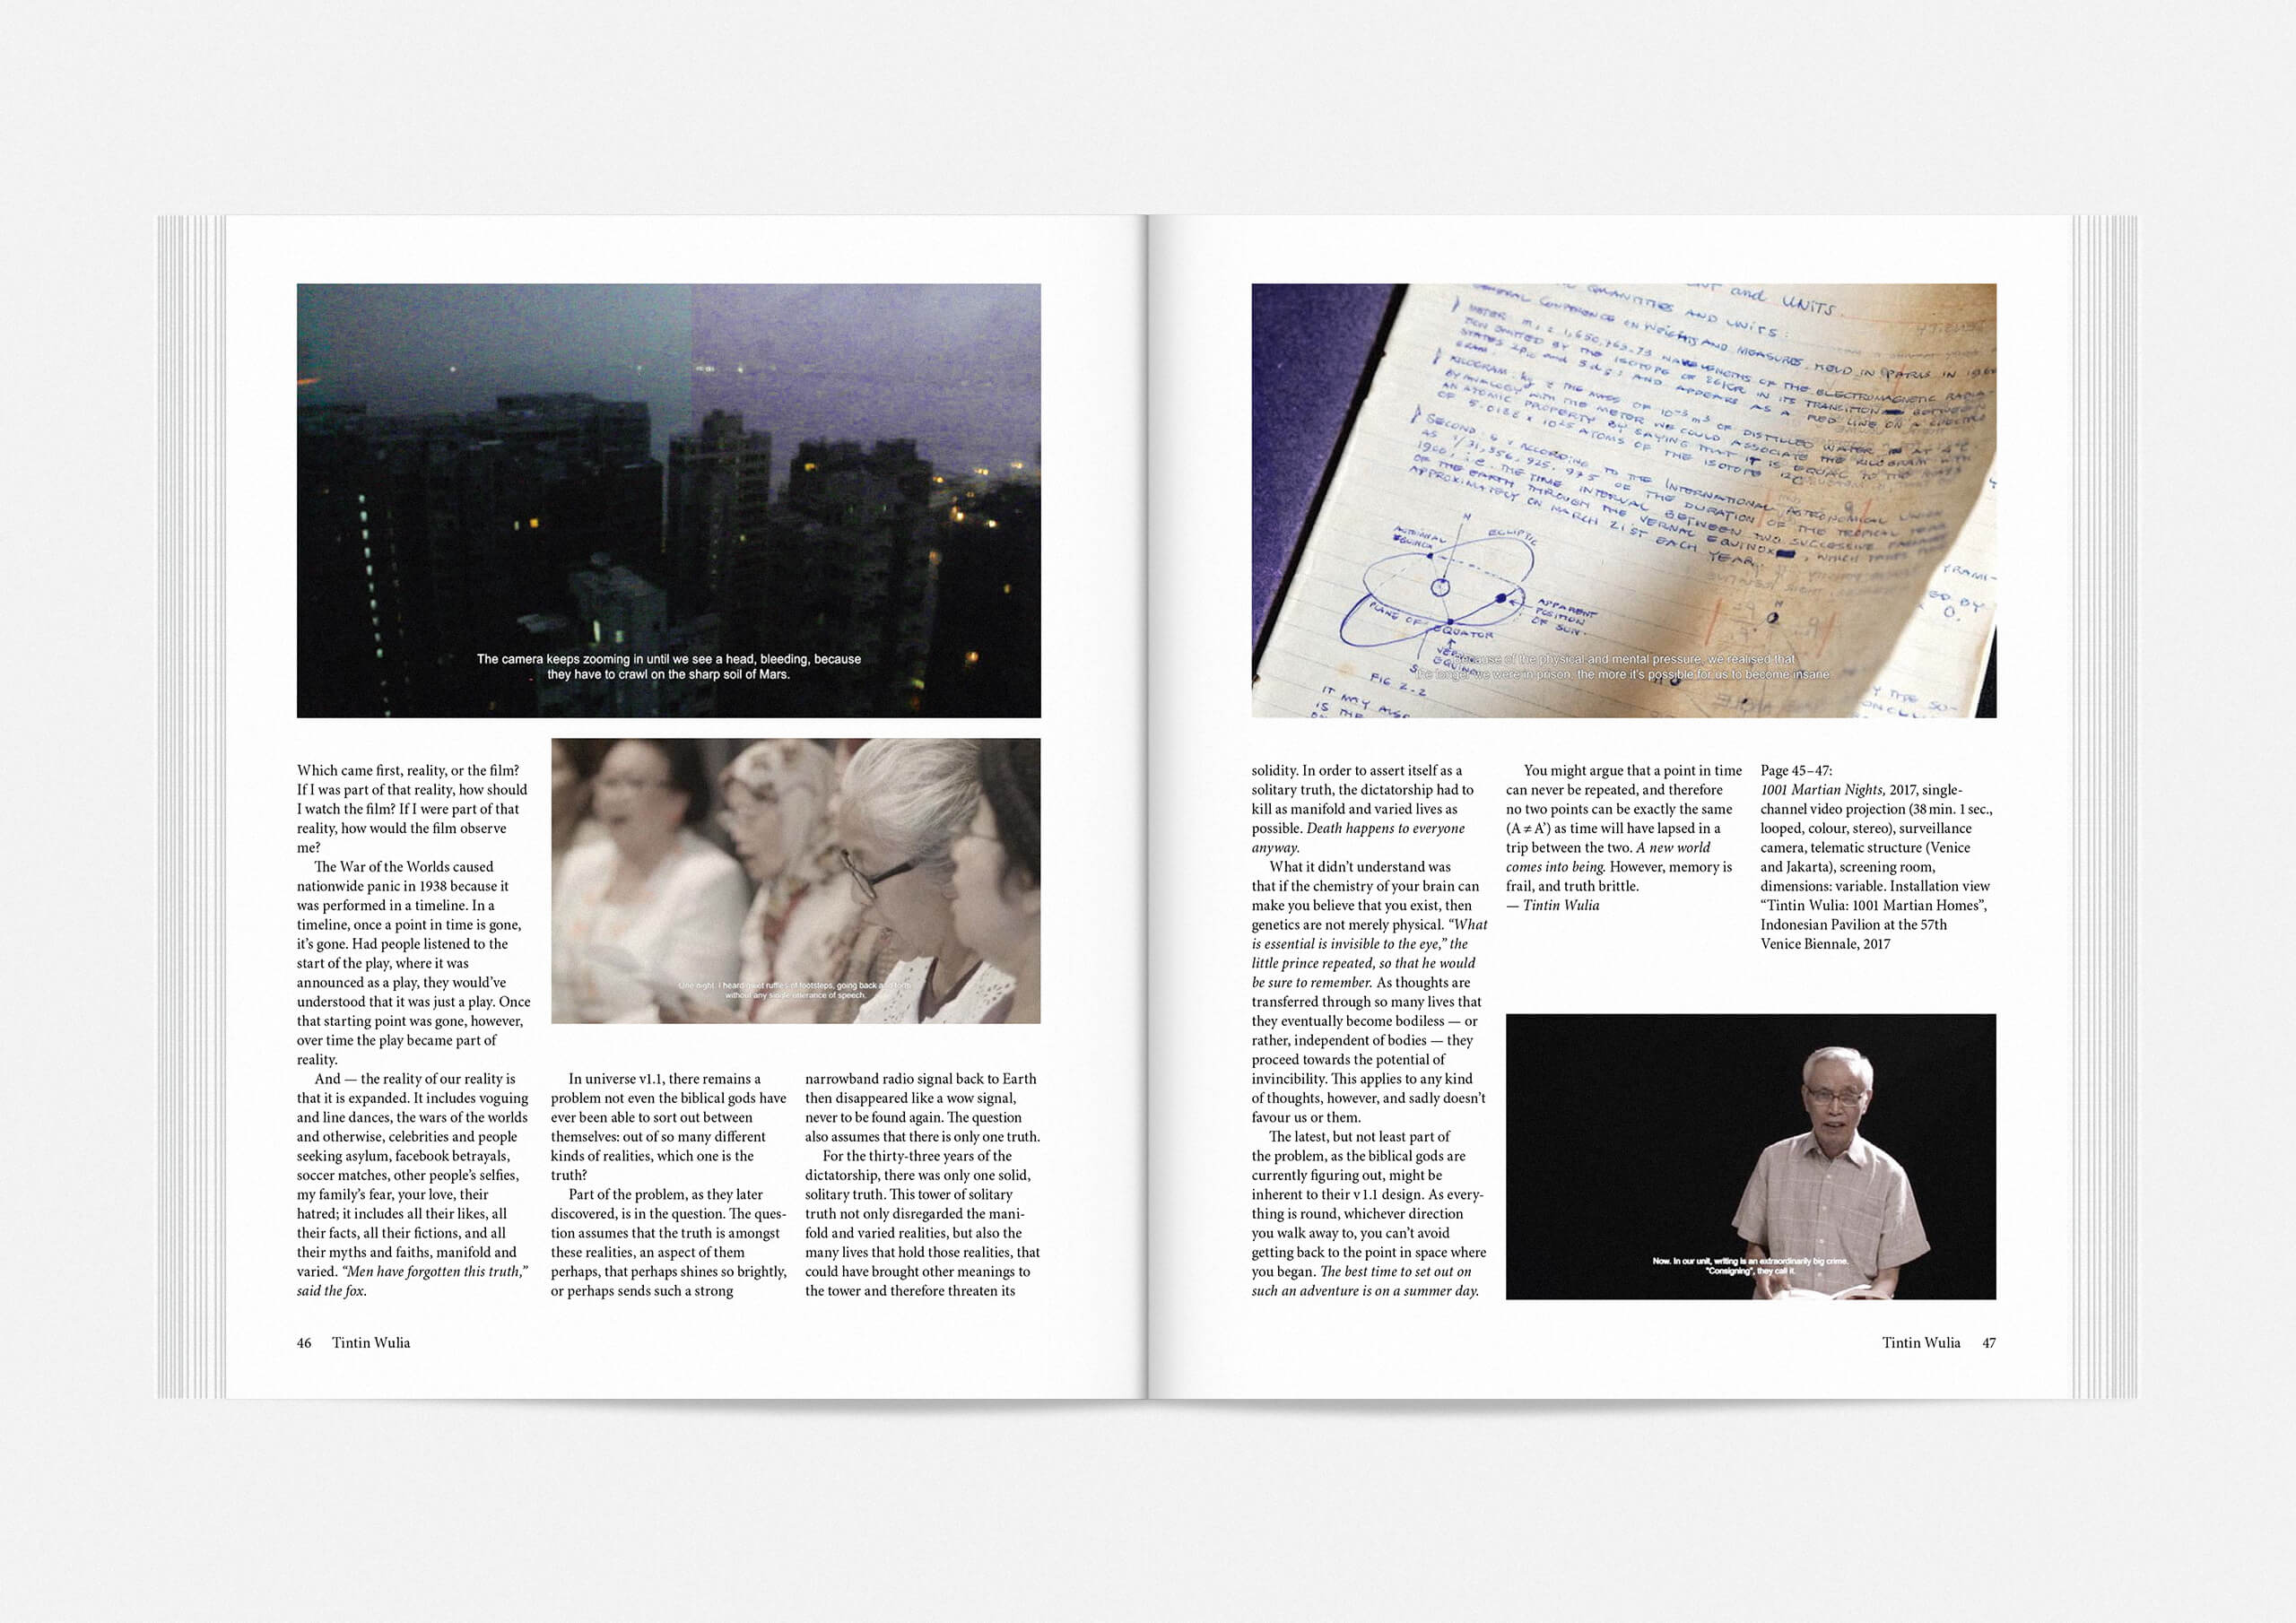 http://www.neuegestaltung.de/media/pages/clients/protocollum-issue-no-05/ddff57e262-1597415139/protocollum-5-page-4647-ng.jpg